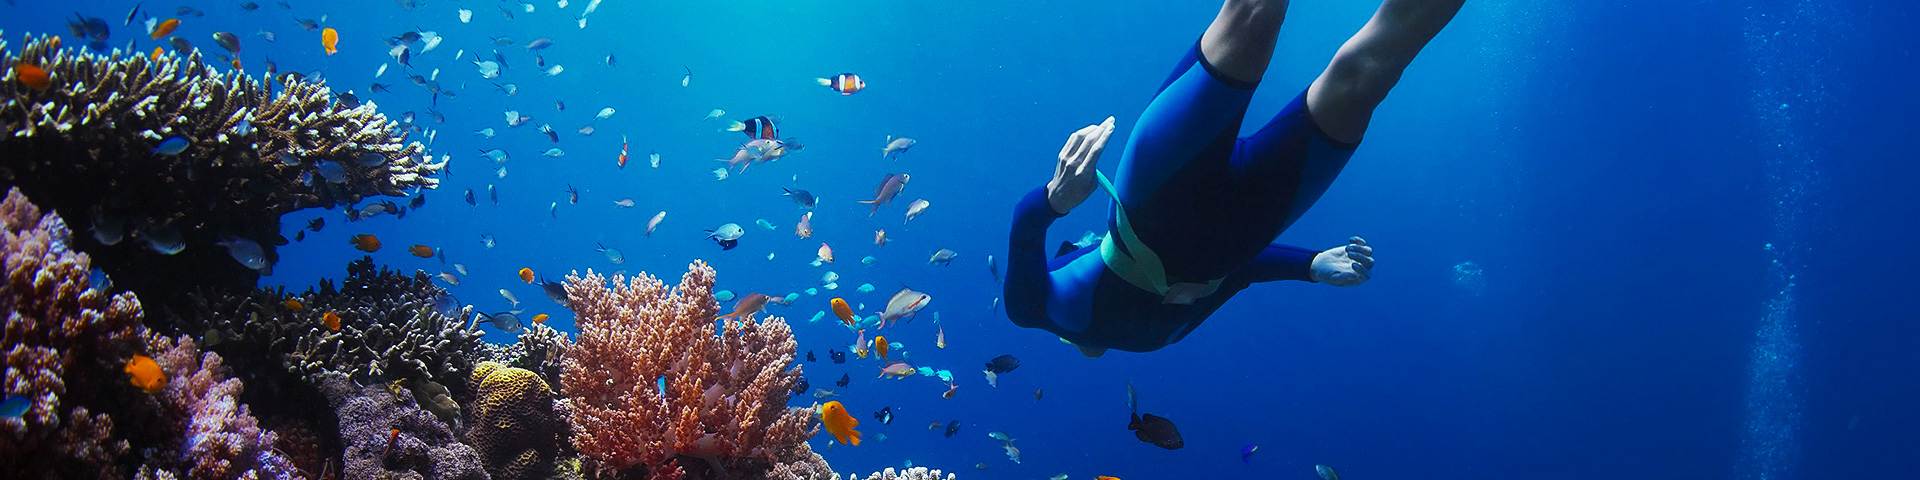 Activities while on guided adventure tour in Galapagos Islands include scuba diving